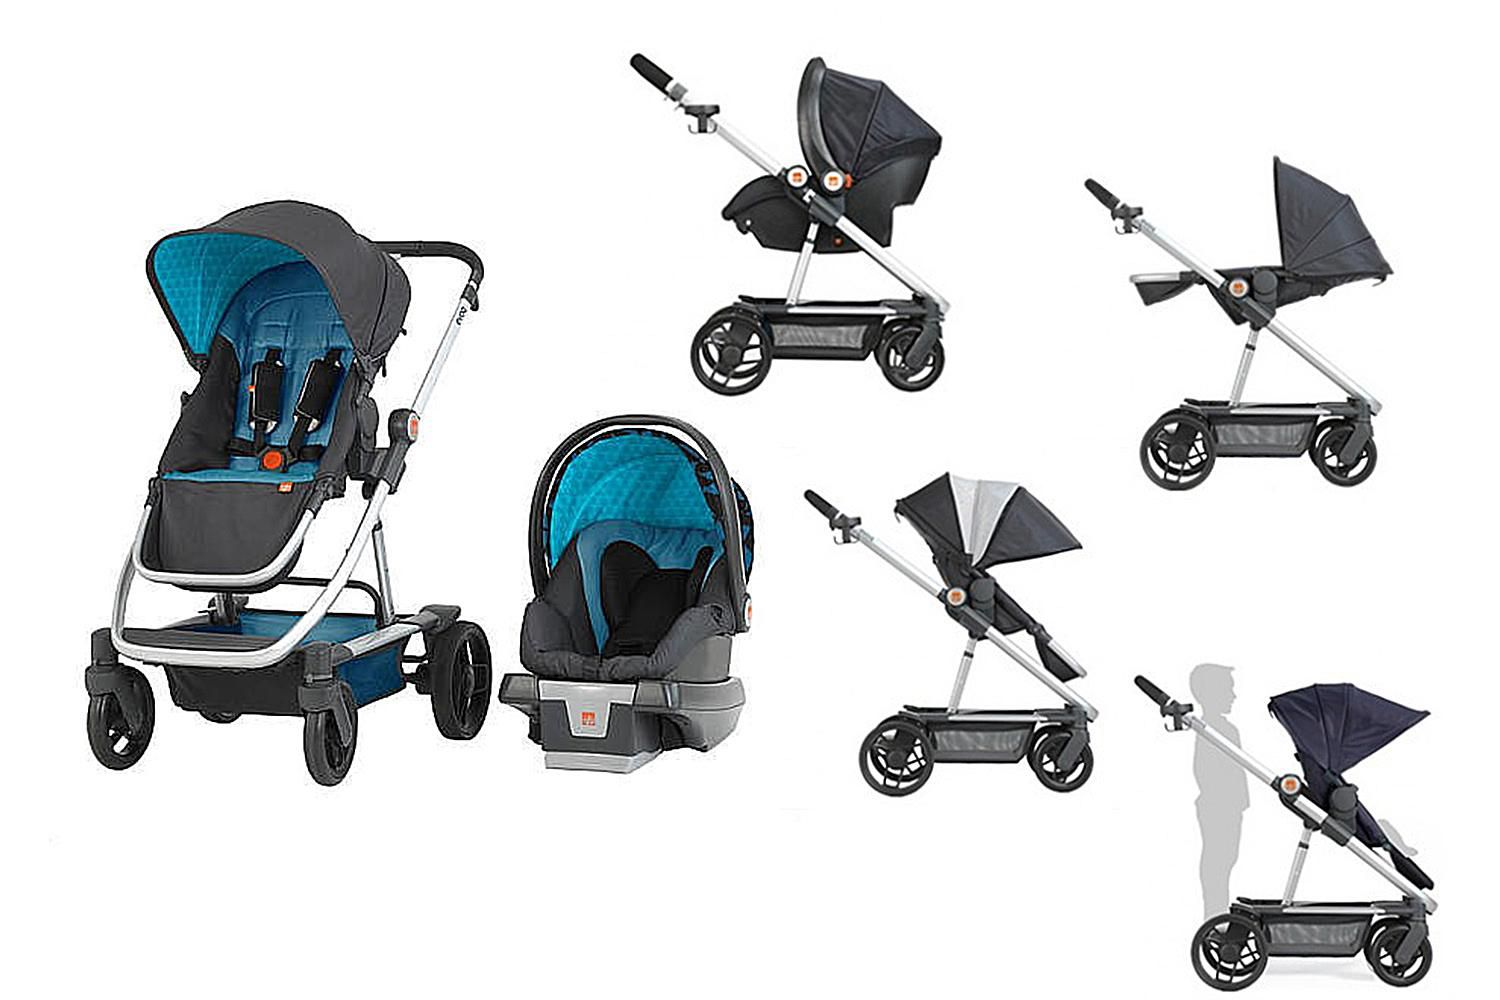 The Best Travel Systems for Baby